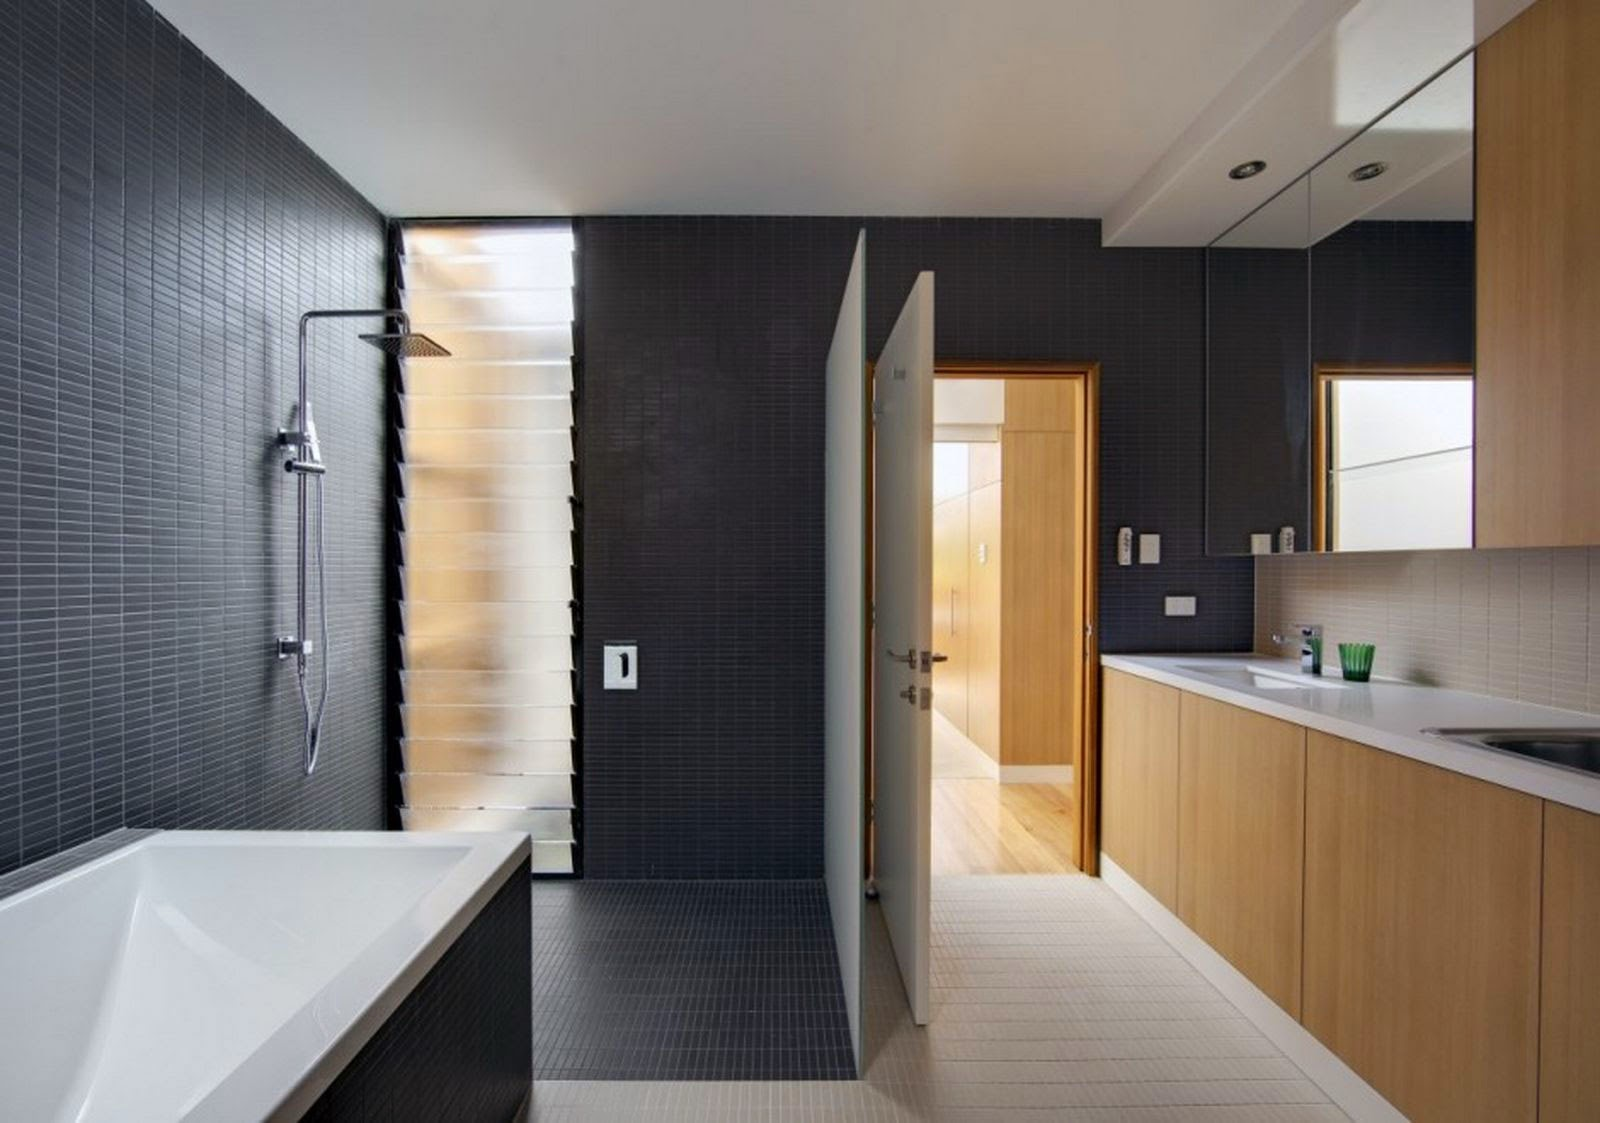 7-important-thing-in-Room-Design-Bathroom-House-Minimalist